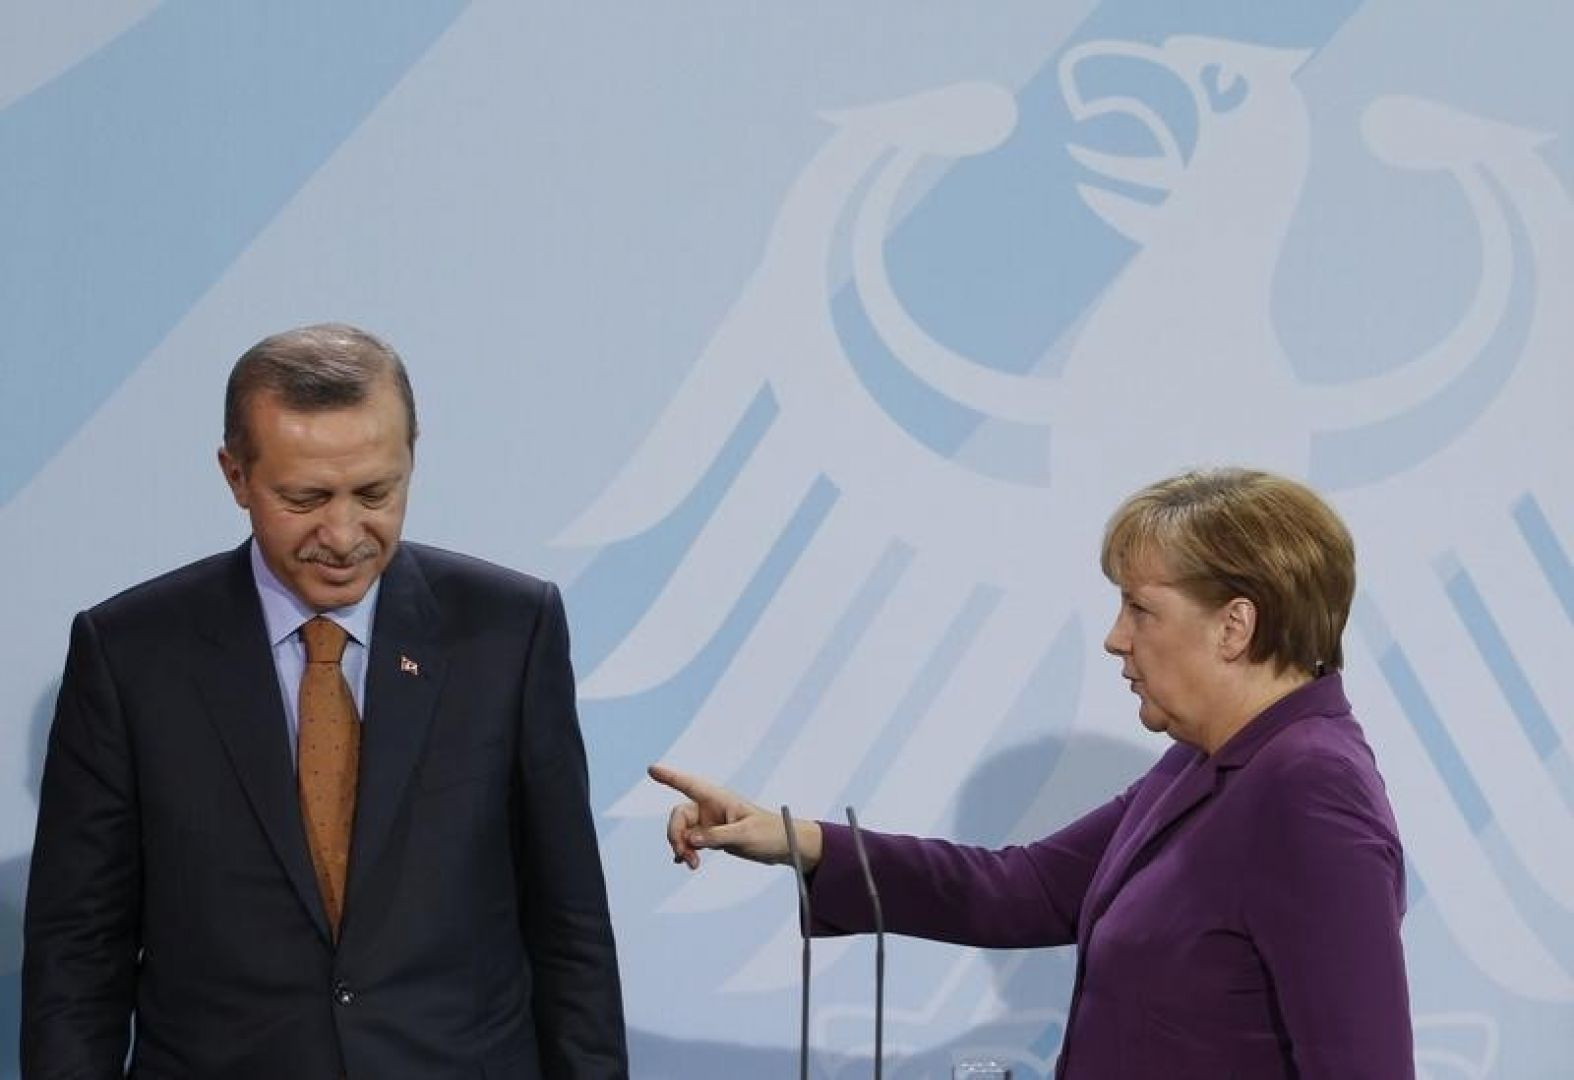 Merkel forced to defend her response to refugee crisis in TV debate